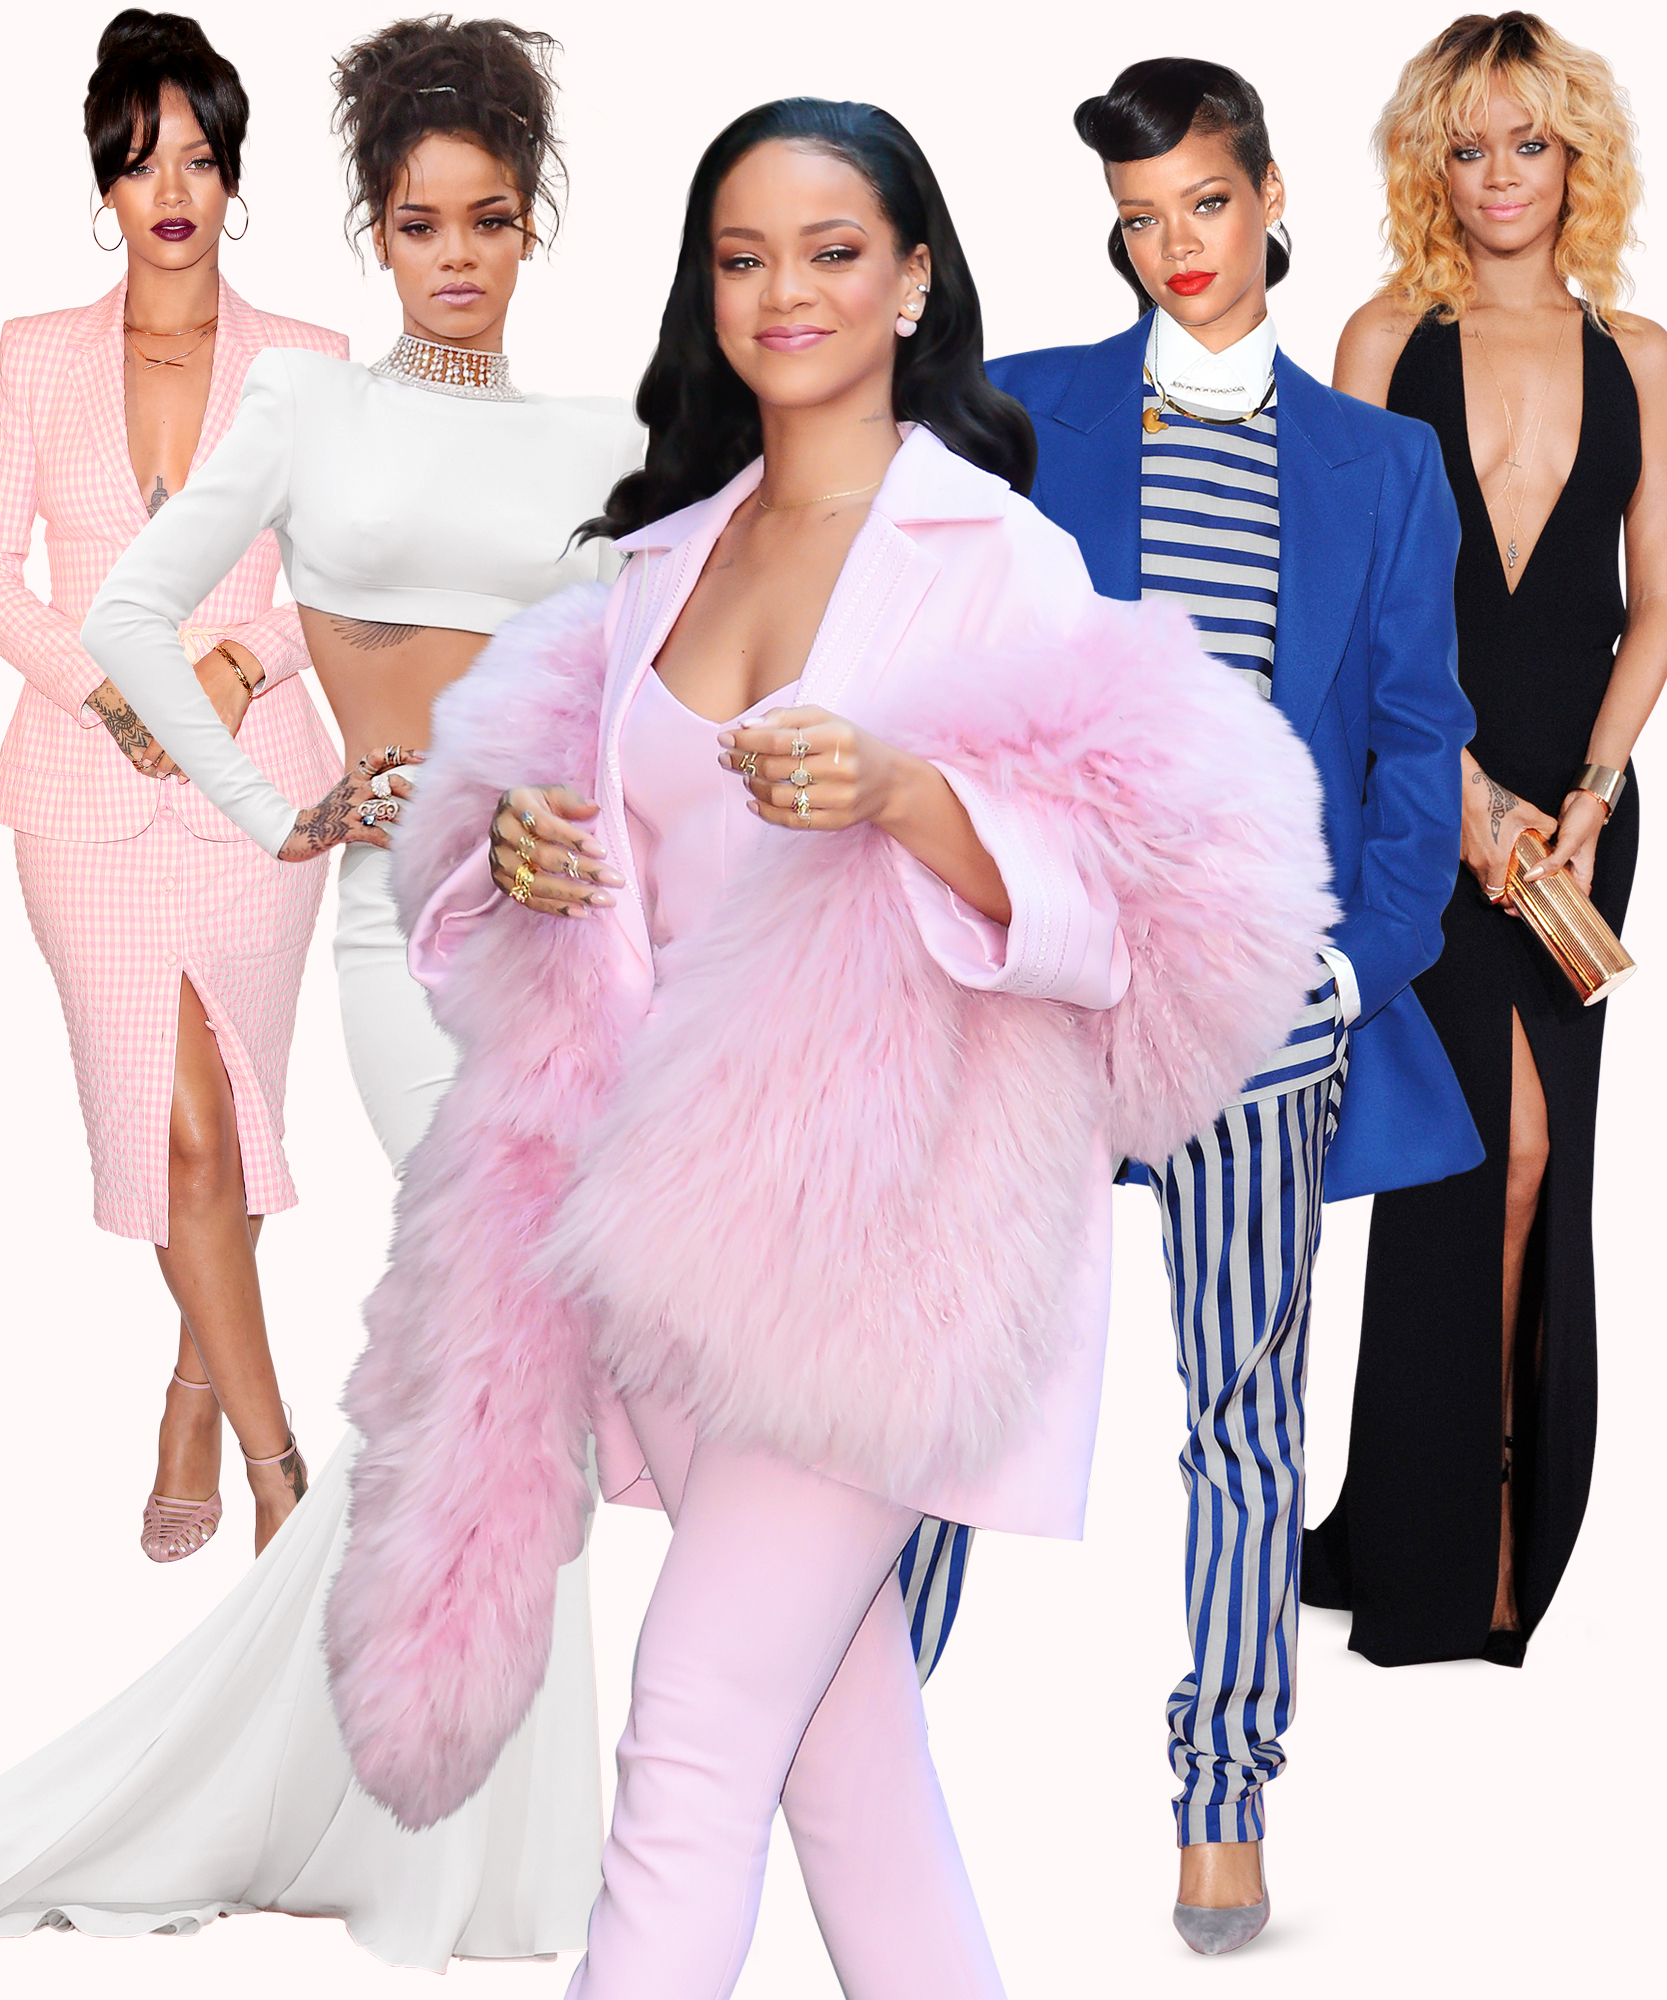 InStyle July 2017 HER Rihanna - Lead